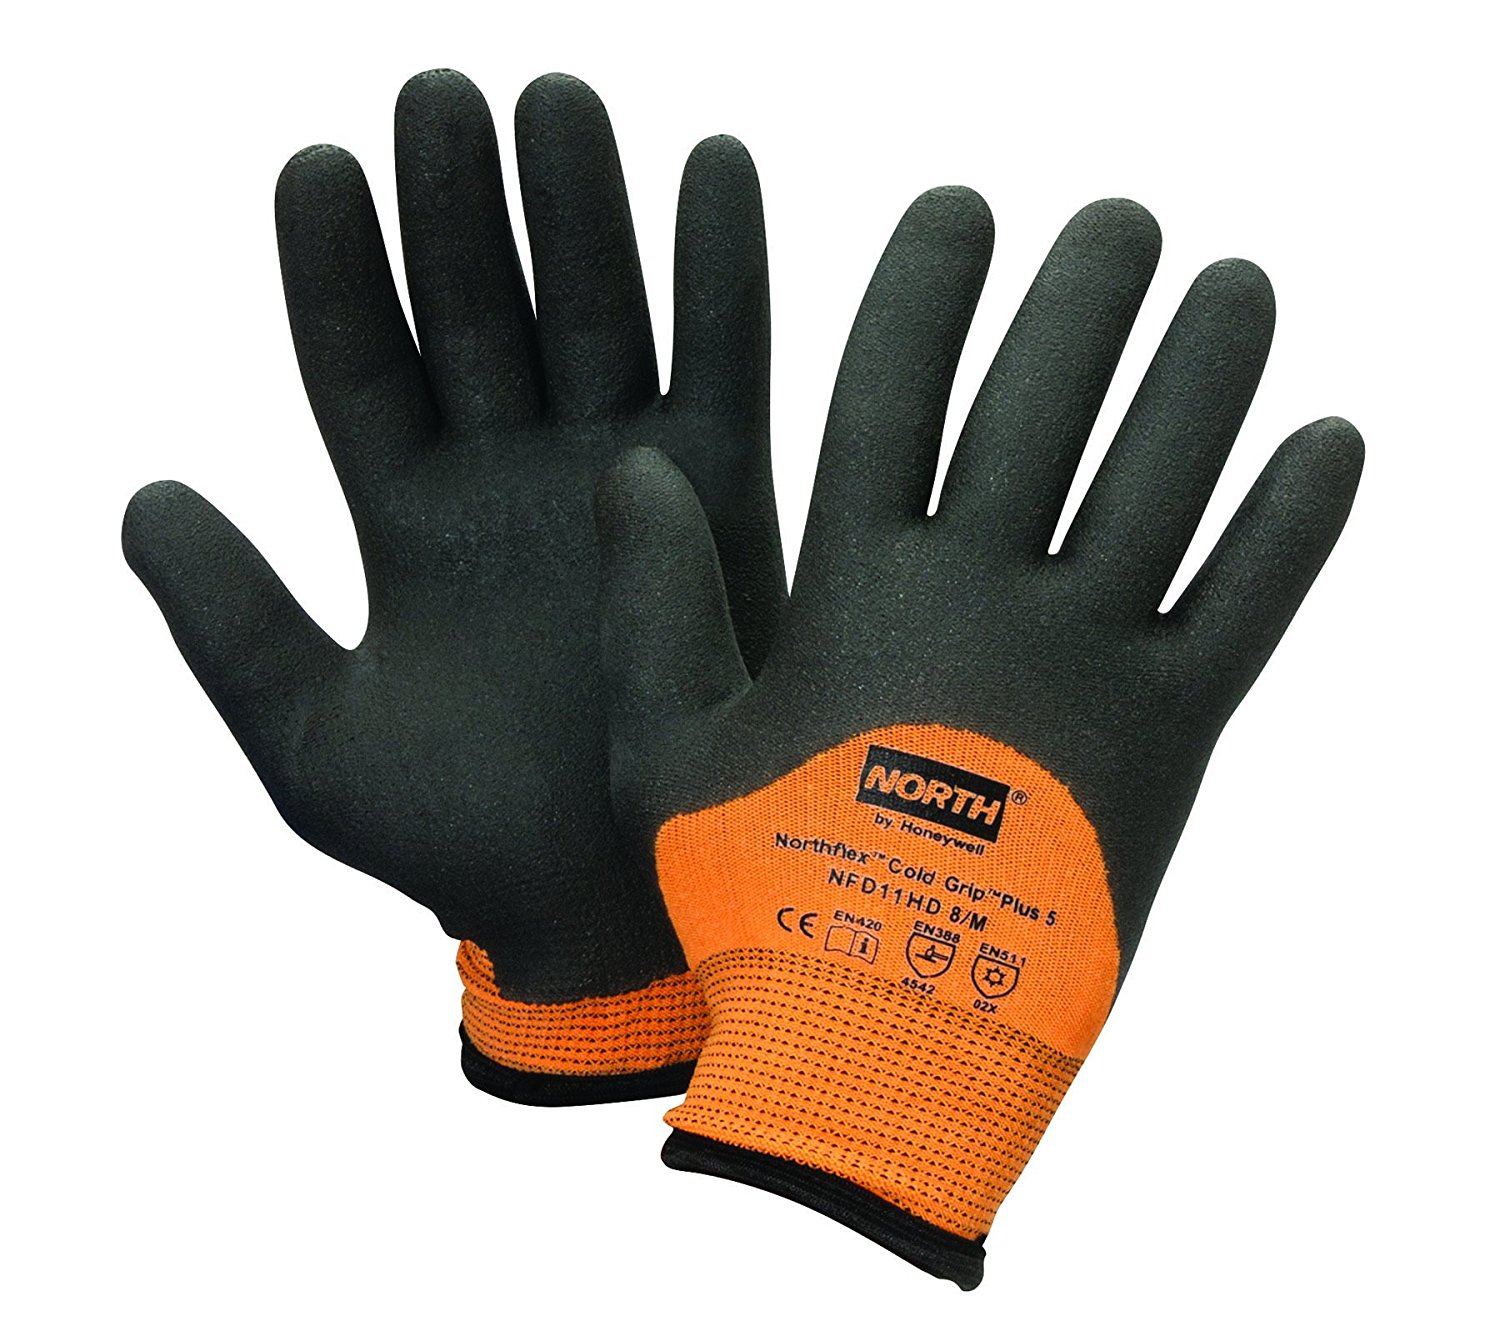 Honeywell Cold Grip Plus 5 Cut Proof Glove